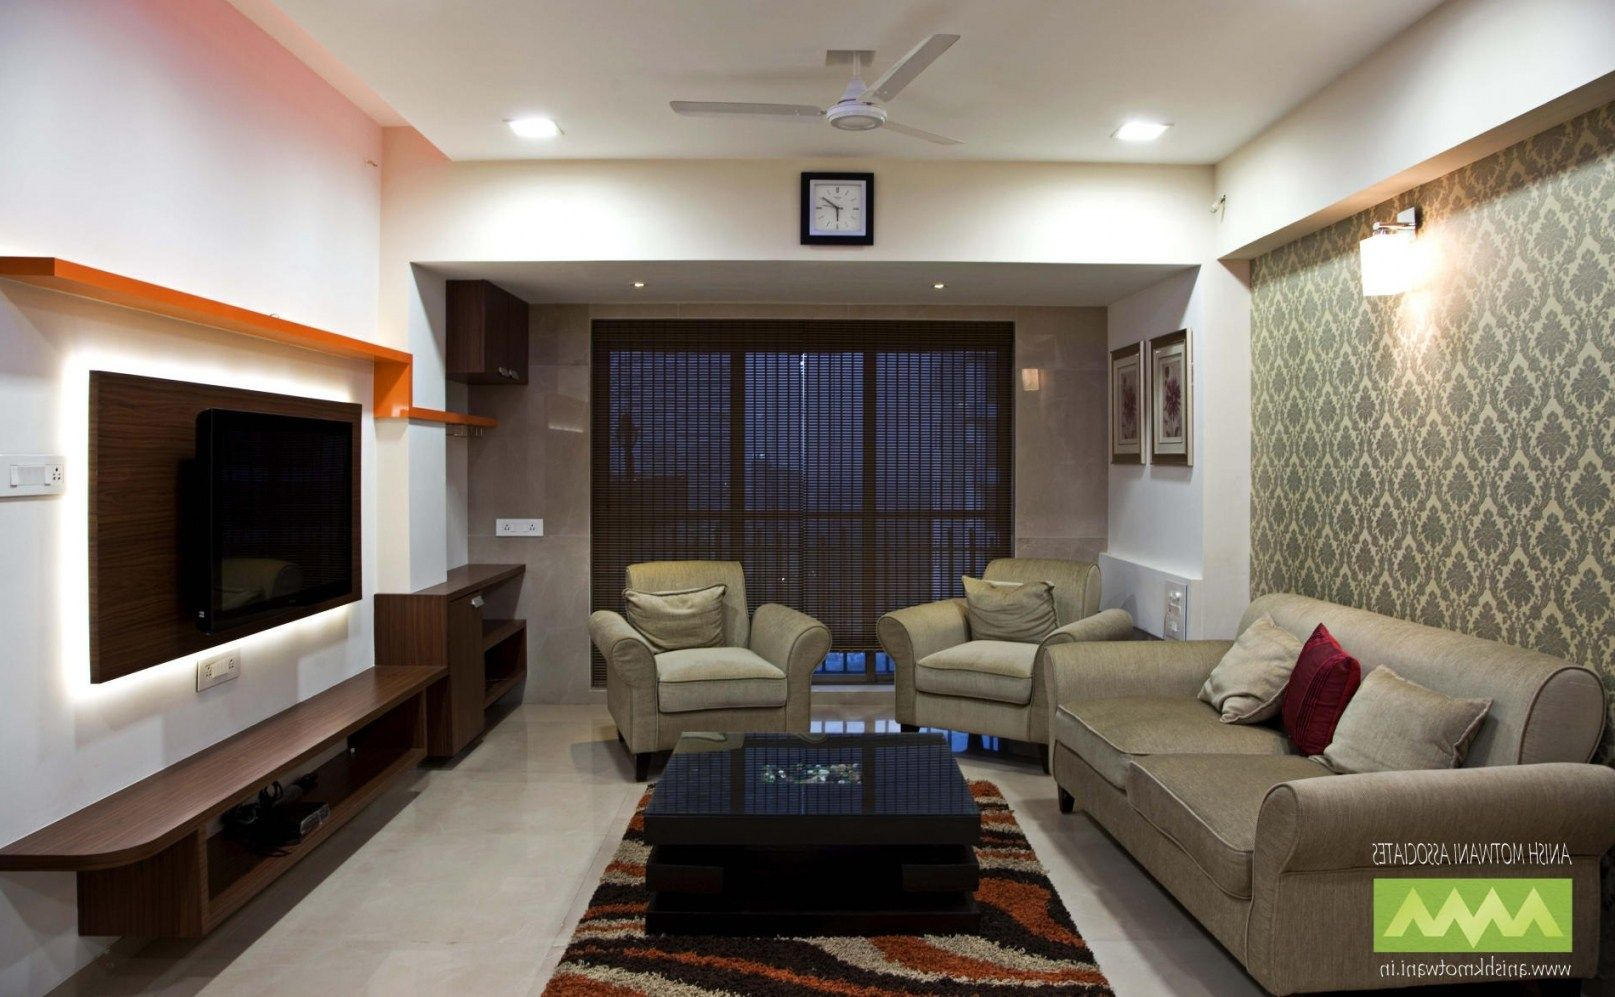 Top 10 Simple Interior Design Ideas For Small Living Room In India Top 10 Simple  Interior Design Ideas For Small Living Room In India